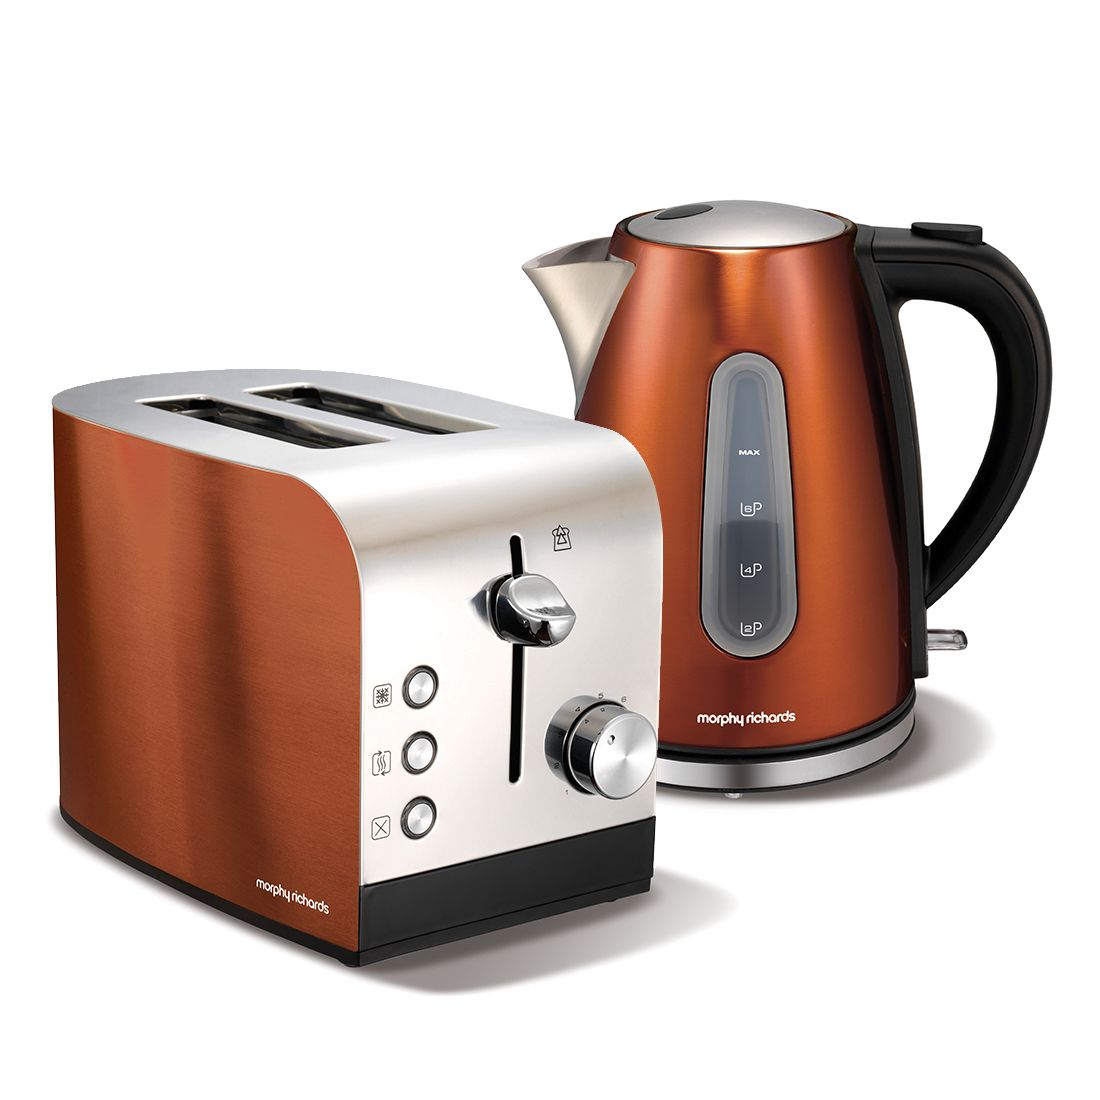 morphy richards copper accents kettle toaster set. Black Bedroom Furniture Sets. Home Design Ideas